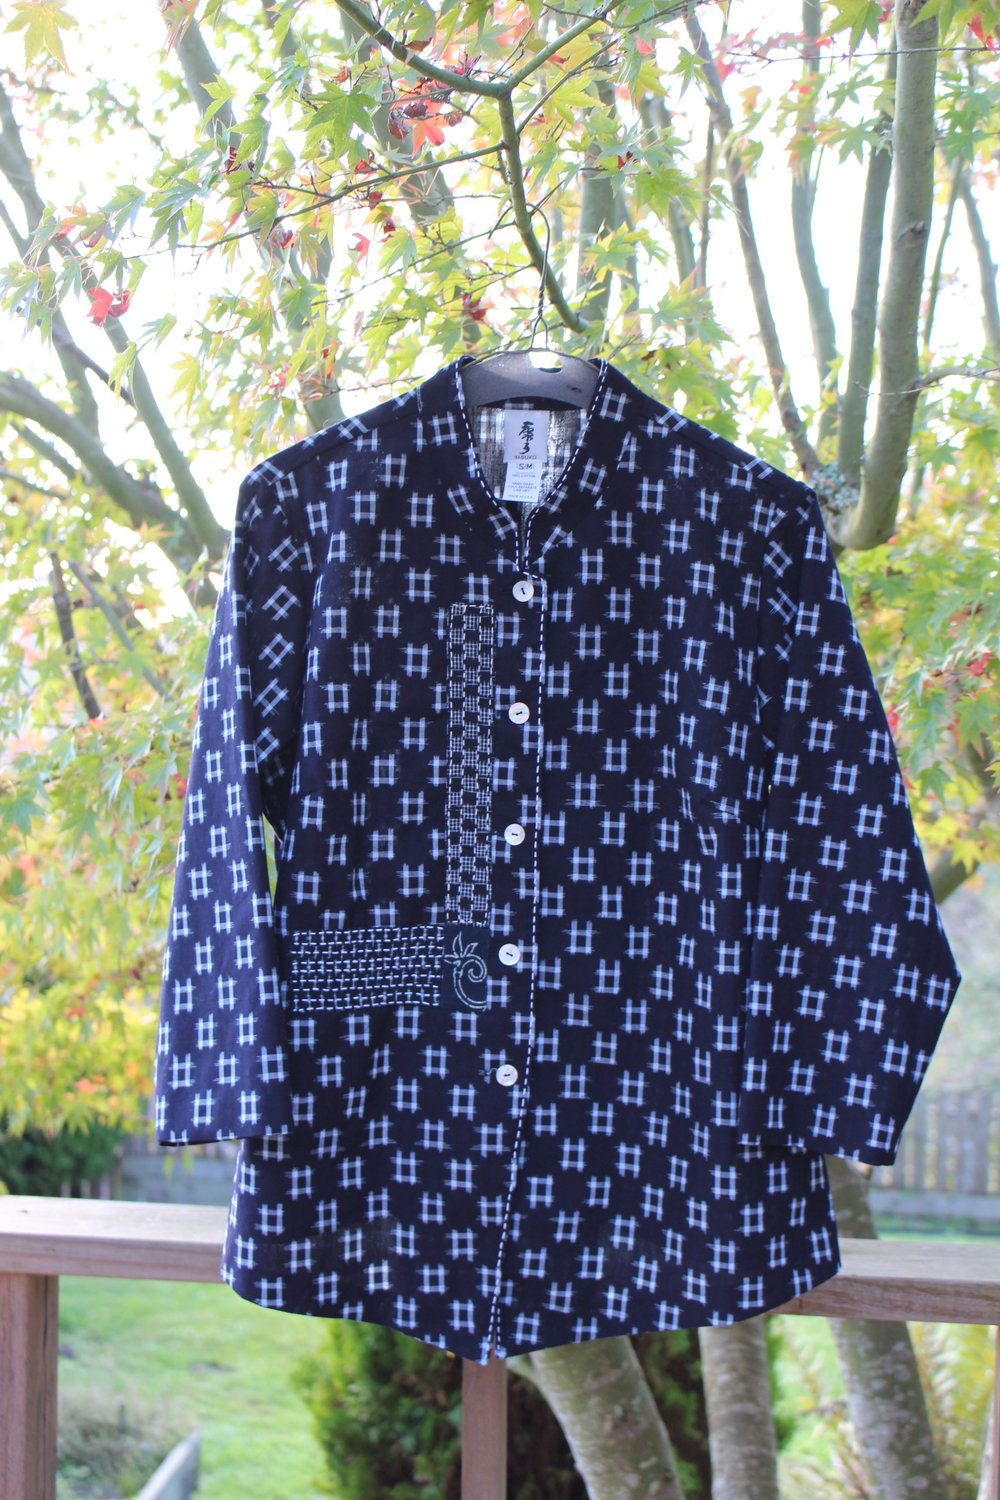 Mao Collar Blouse - Vintage cotton kasuri with sashiko stitch